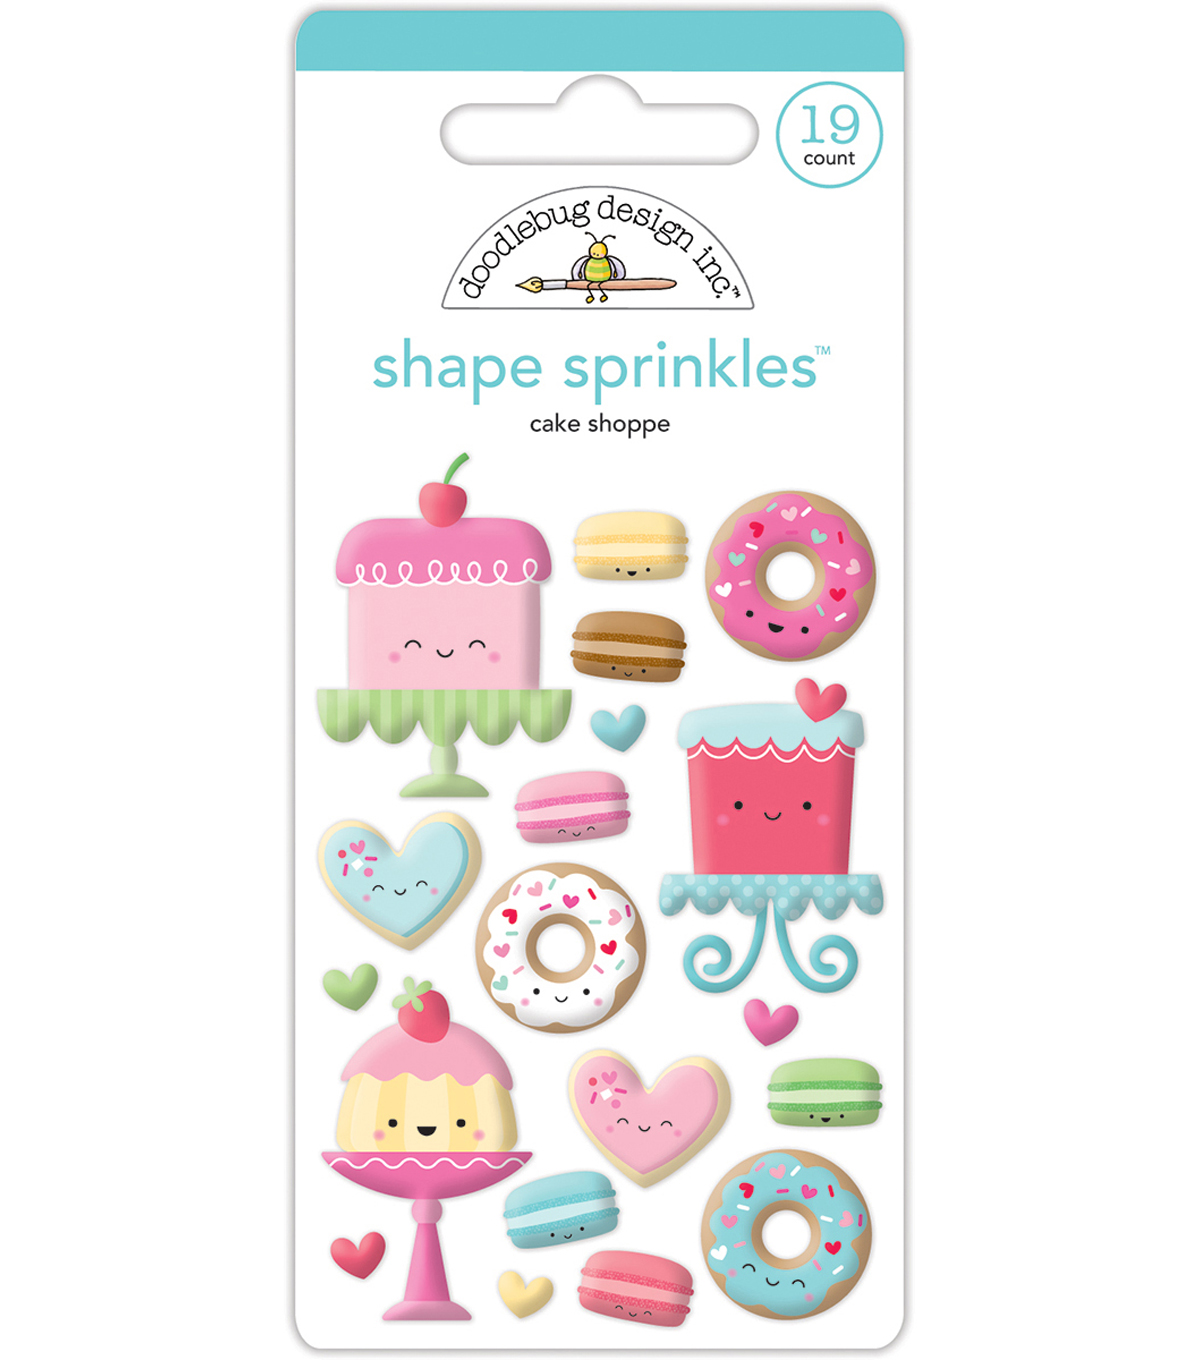 Sprinkles Adhesive Glossy Enamel Shapes-Cream & Sugar Cake Shoppe